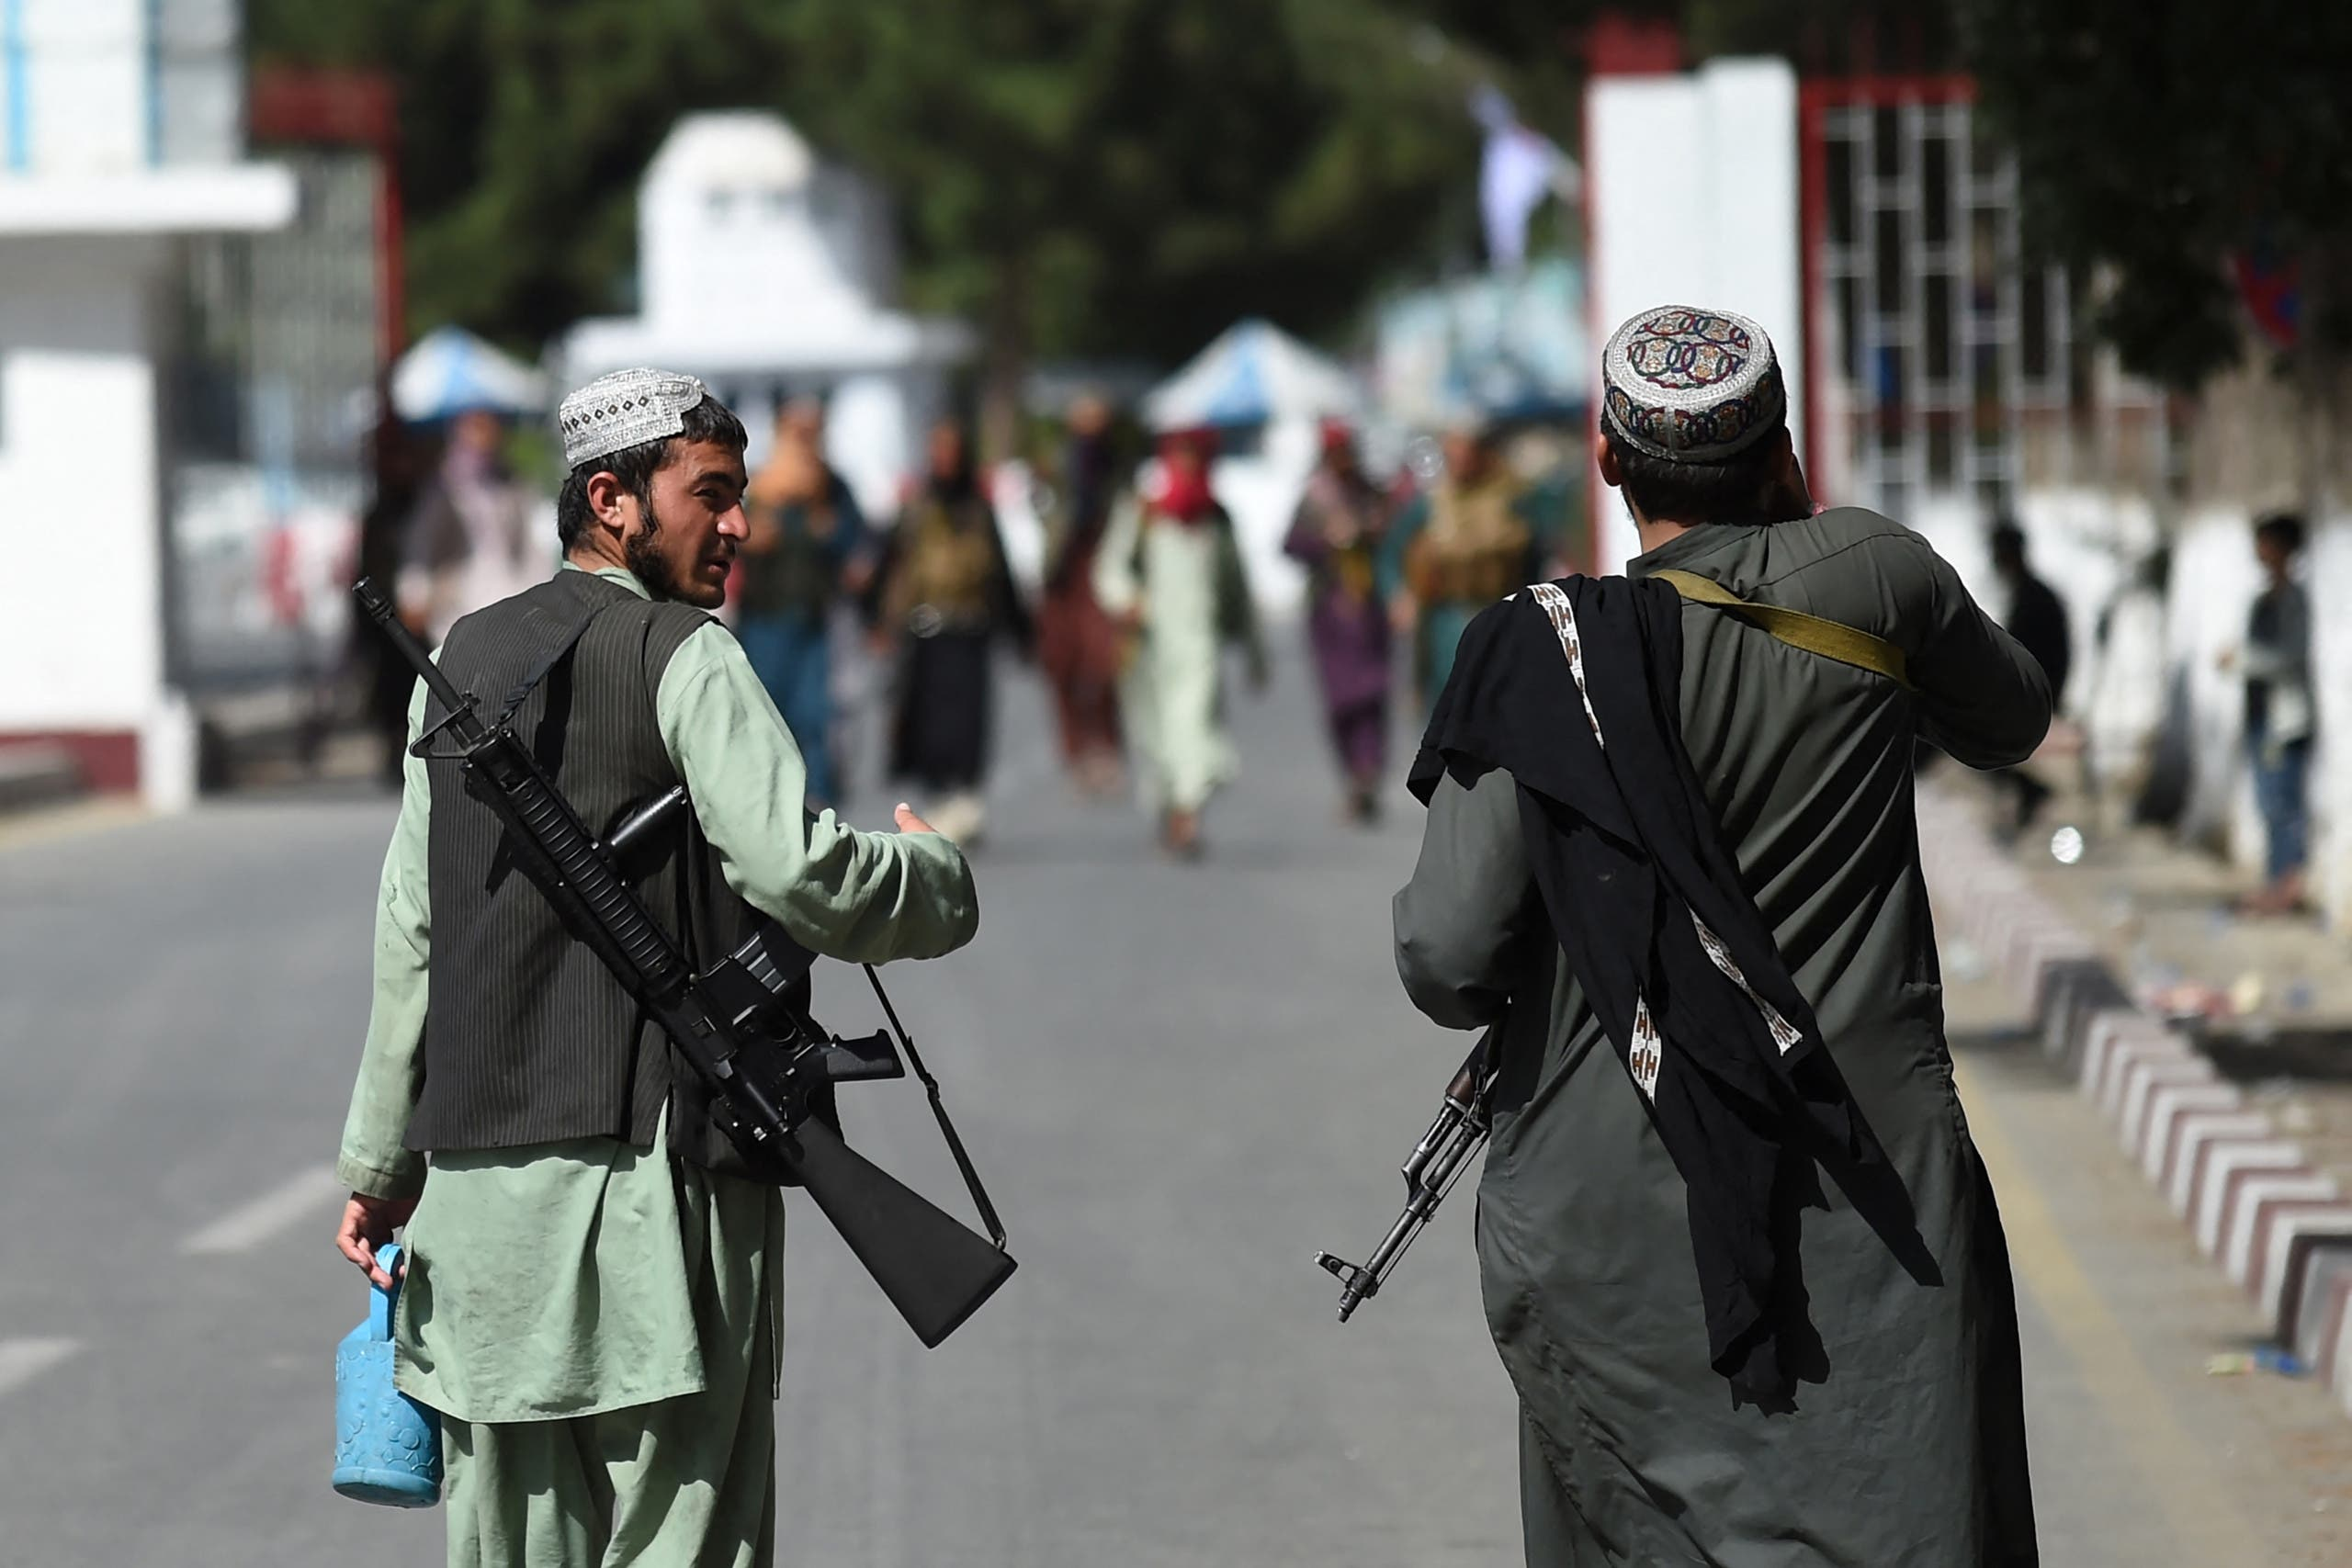 Taliban fighters walk at the main entrance gate of Kabul airport in Kabul on August 28, 2021, following the Taliban stunning military takeover of Afghanistan. (AFP)